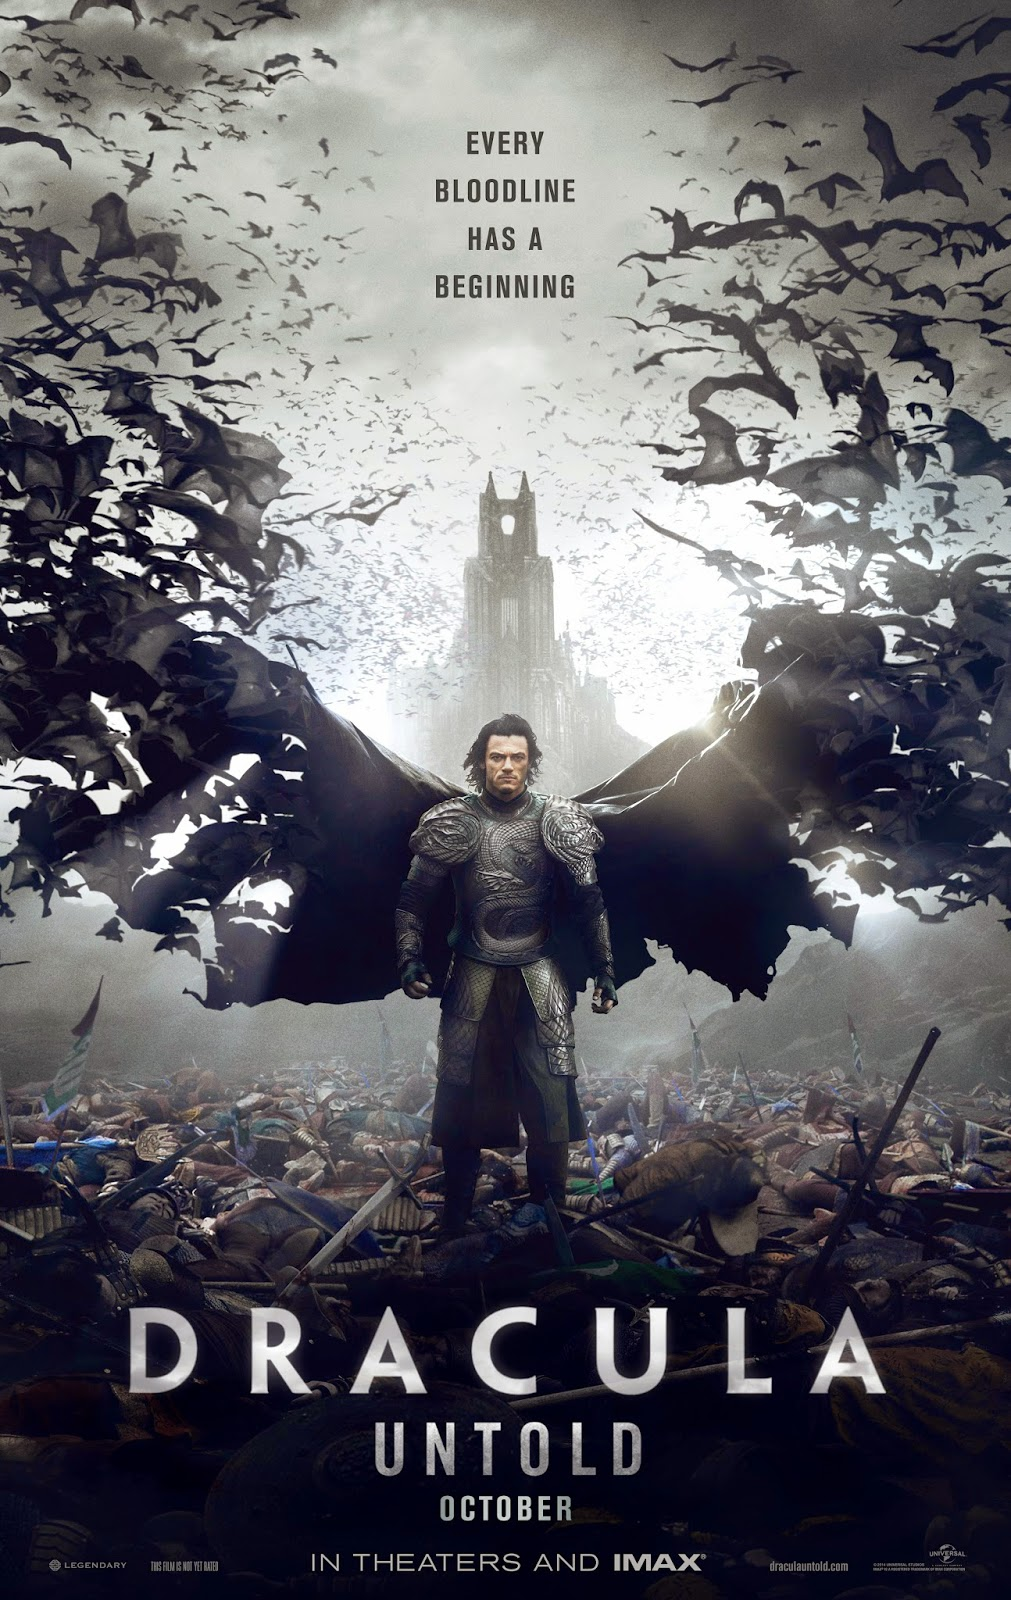 http://www.culture21century.gr/2014/10/dracula-untold-movie-review.html